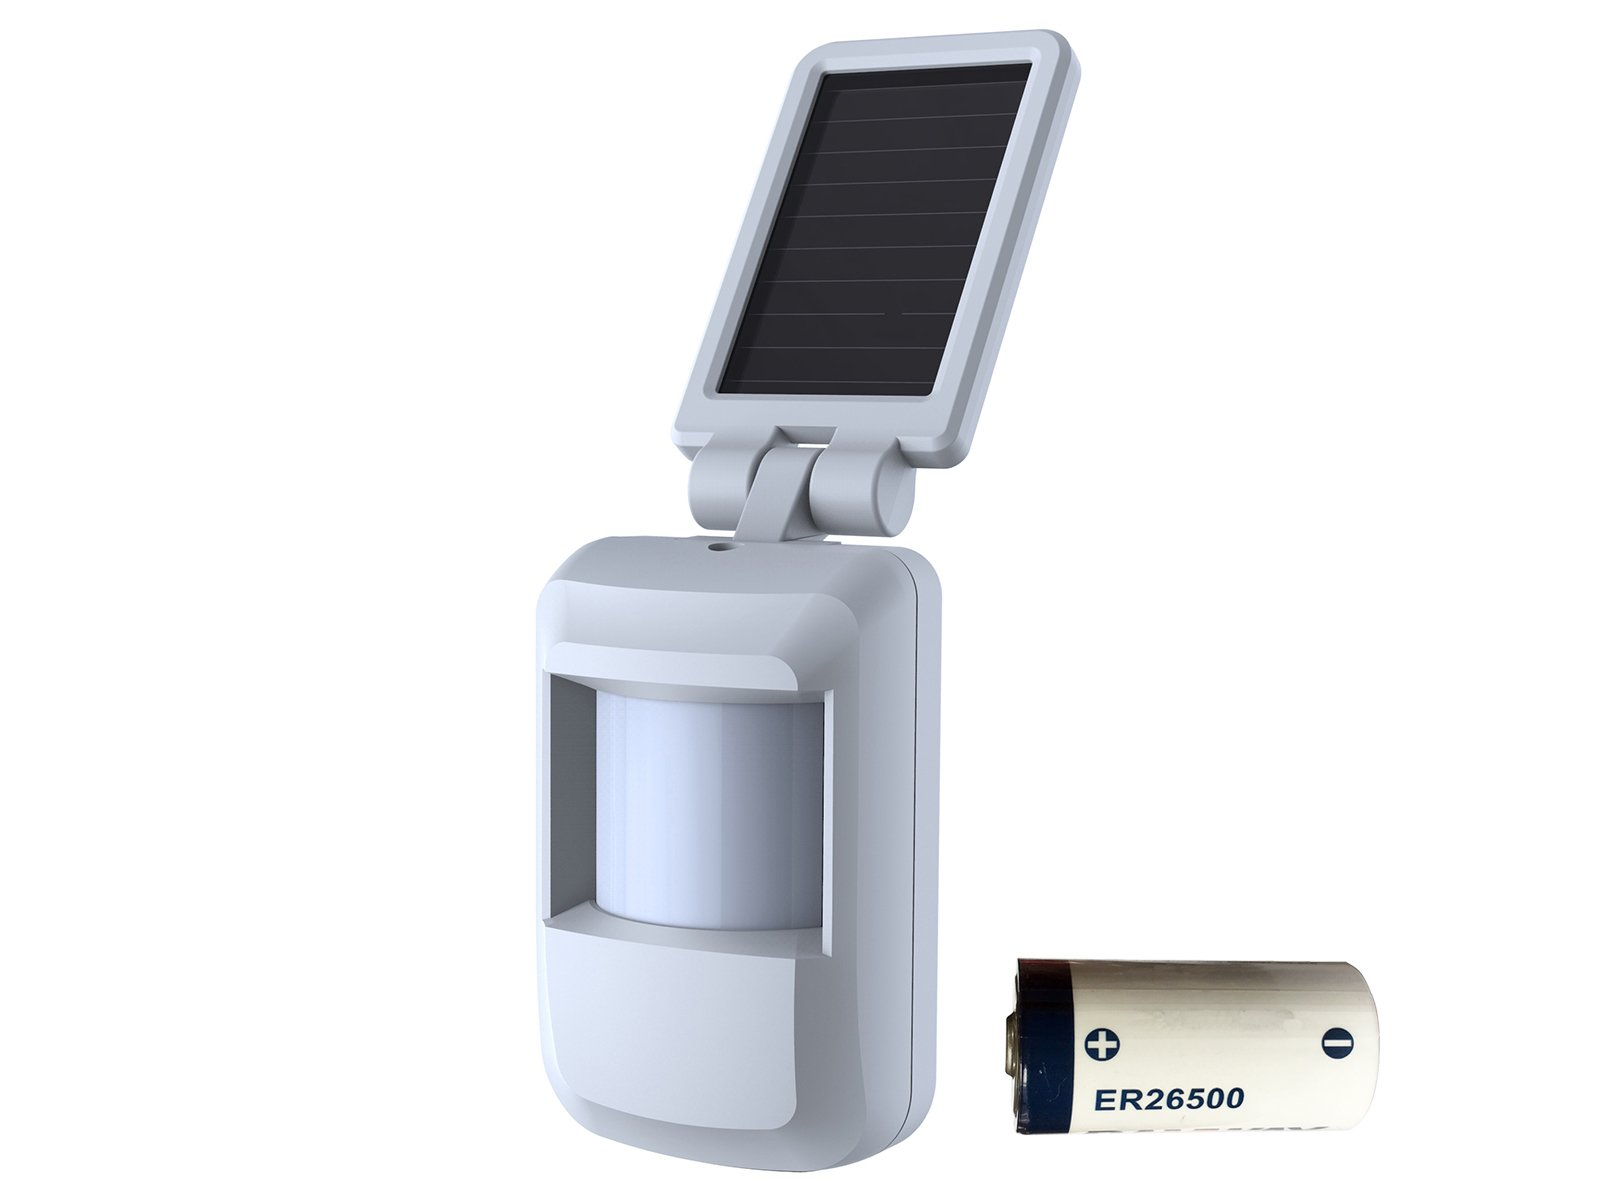 HTZSAFE Solar Wireless Motion Sensor- 5 Years No Need Replace The Battery- Sensor Included 9000mAh Lithium Battery-1/4 Mile Long Transmission Range- Home/Business PIR Detector(Not Waterproof)